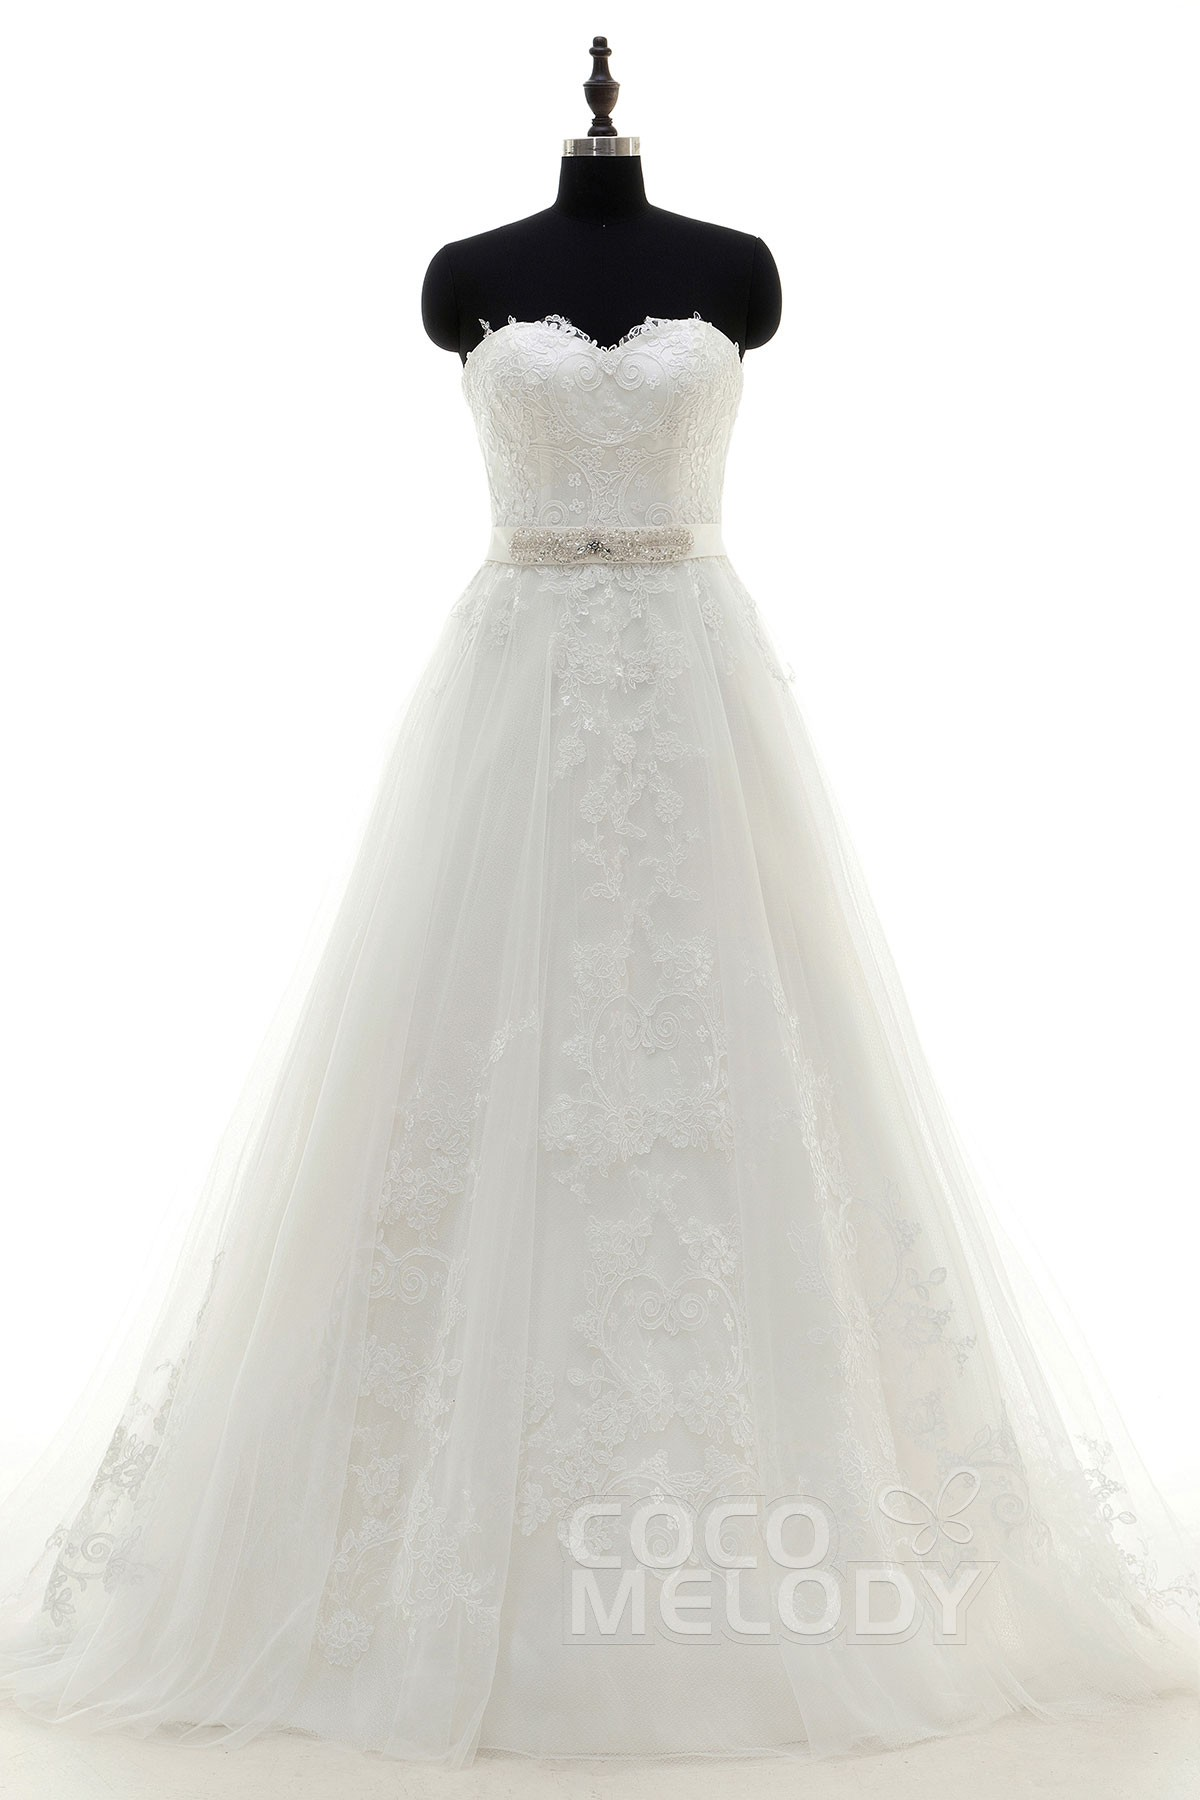 Sweet A-Line Sweetheart Train Tulle Ivory Zipper With Button Wedding Dress with Appliques and Ribbons